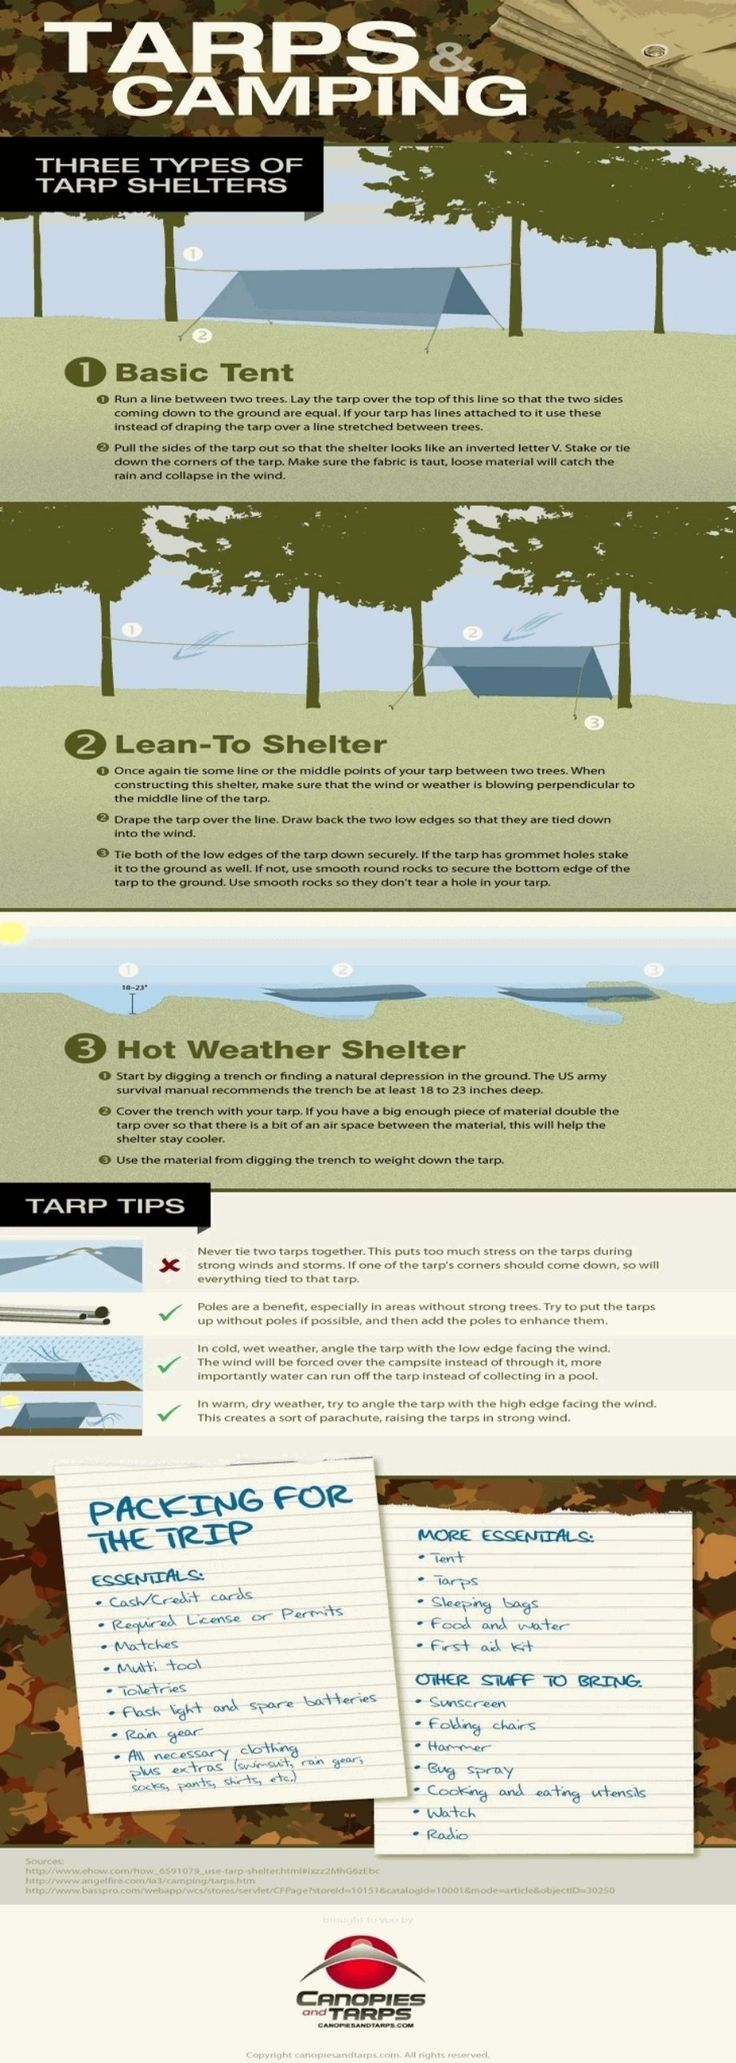 camping tips 19 Tips everybody should know before going camping this summer (22 HQ Photos)